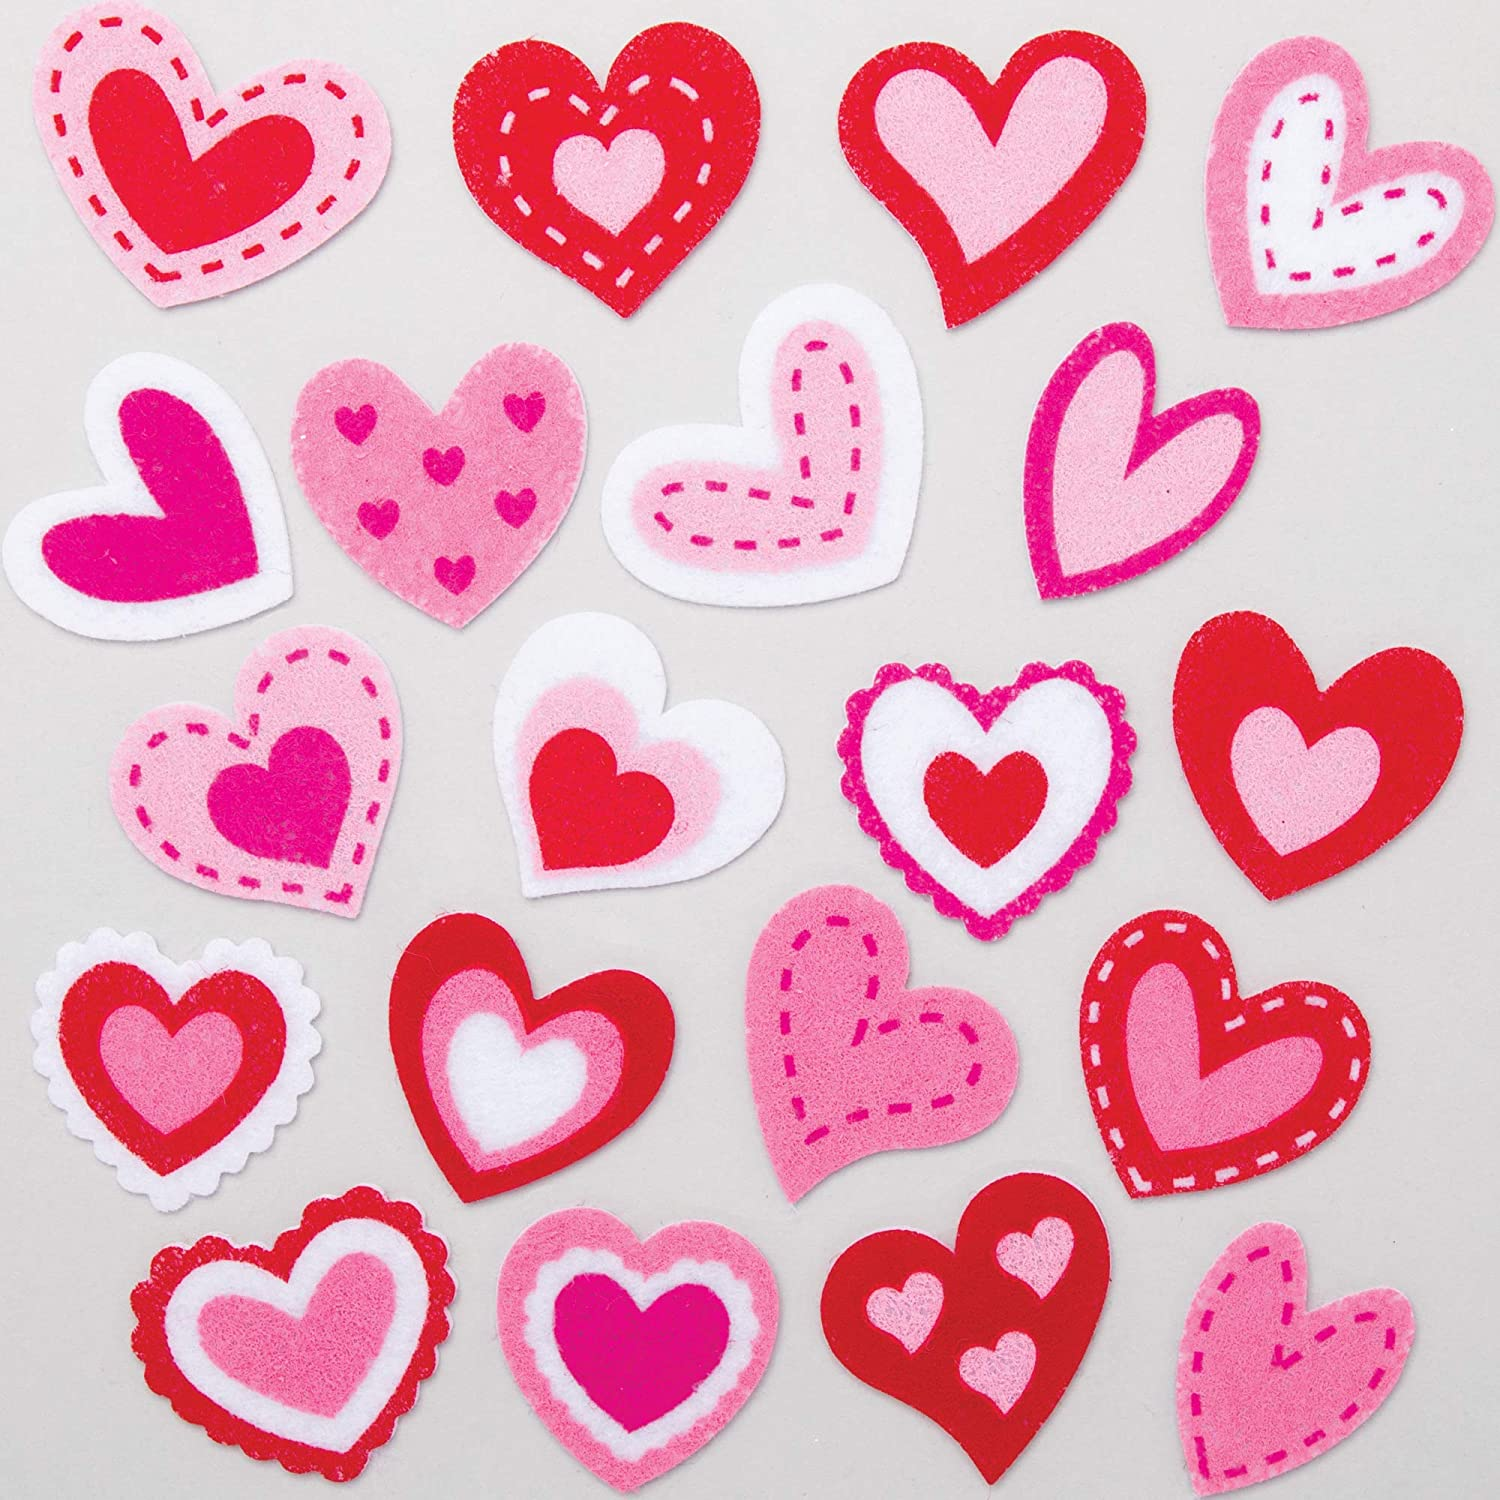 Baker Ross Heart Felt Stickers, Creative Art and Craft Supplies for Kids to Make and Decorate (100 Pack)